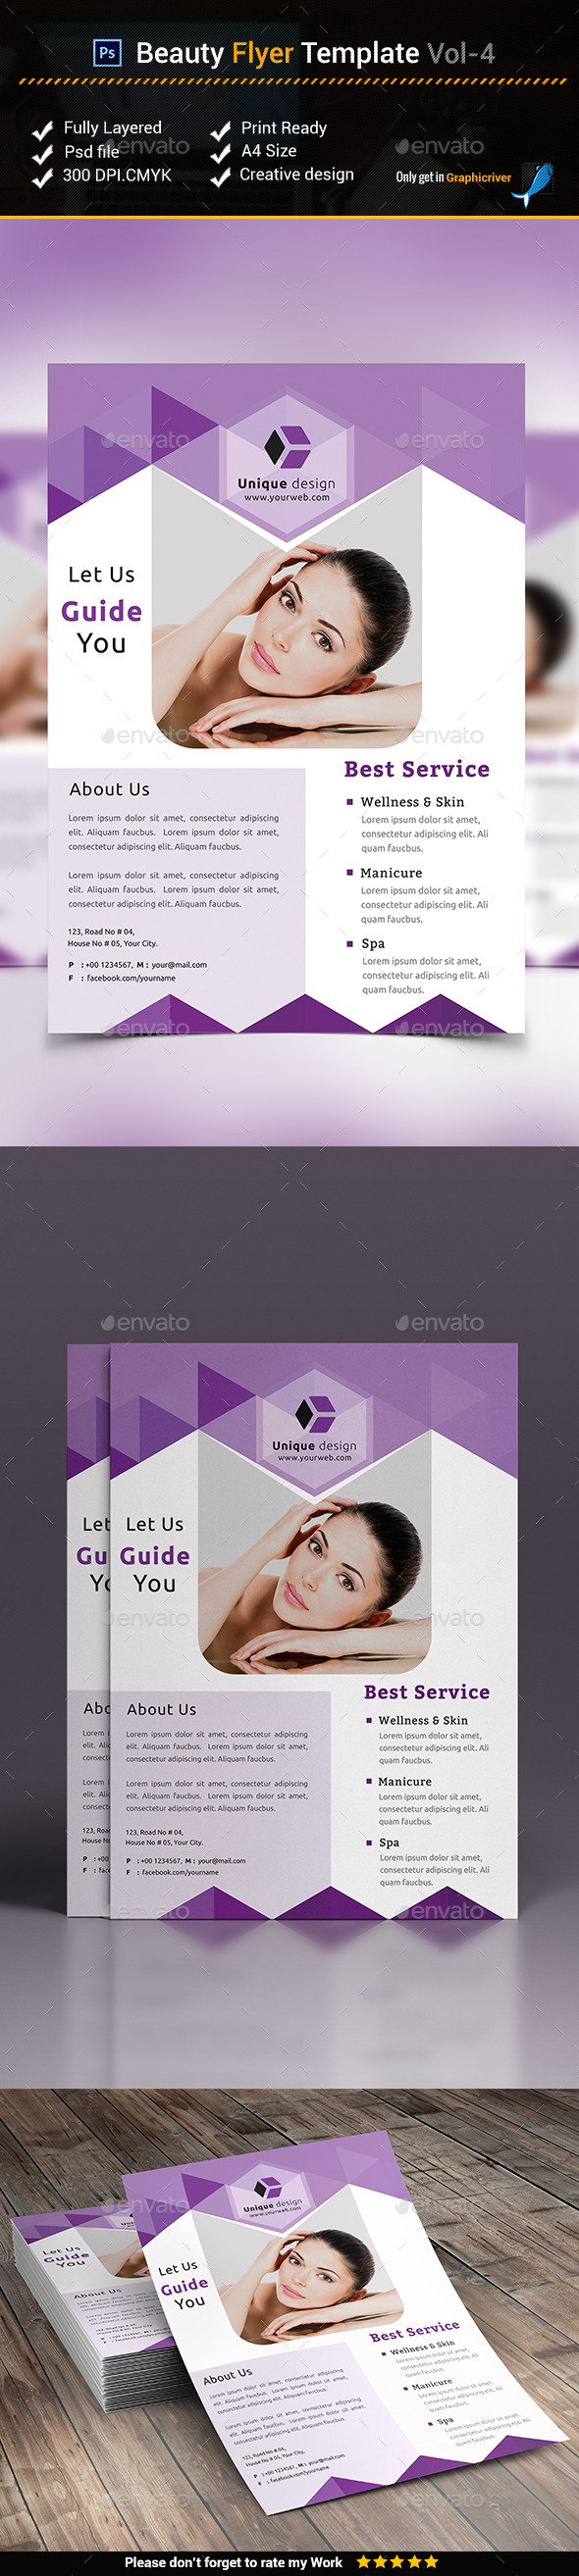 Beauty Flyer Template vol-4 - Corporate Flyers